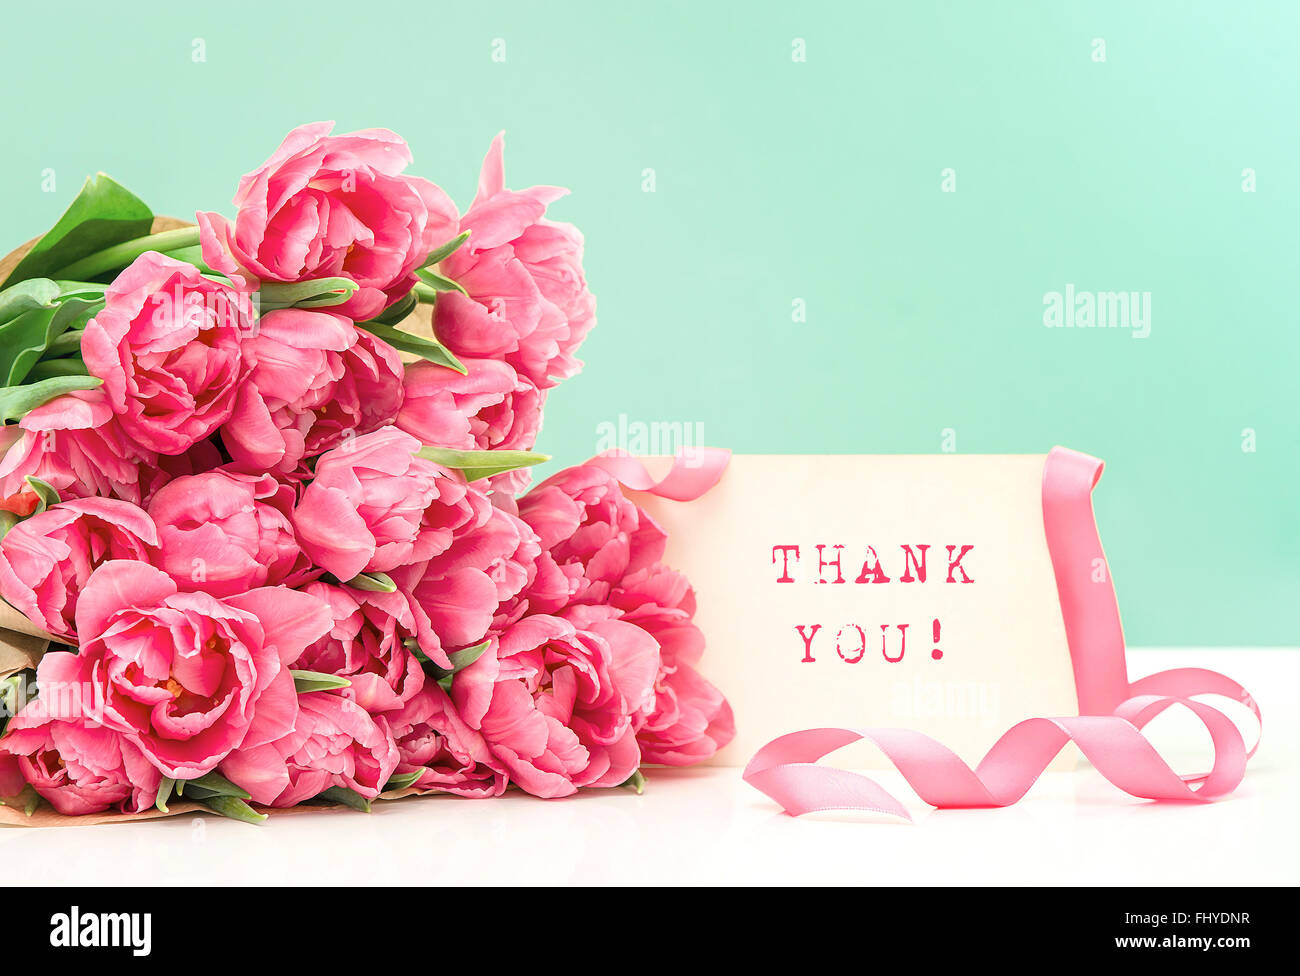 Pink tulips and card sample text thank you postcard concept pink tulips and card sample text thank you postcard concept picture with oil painting effect thecheapjerseys Gallery